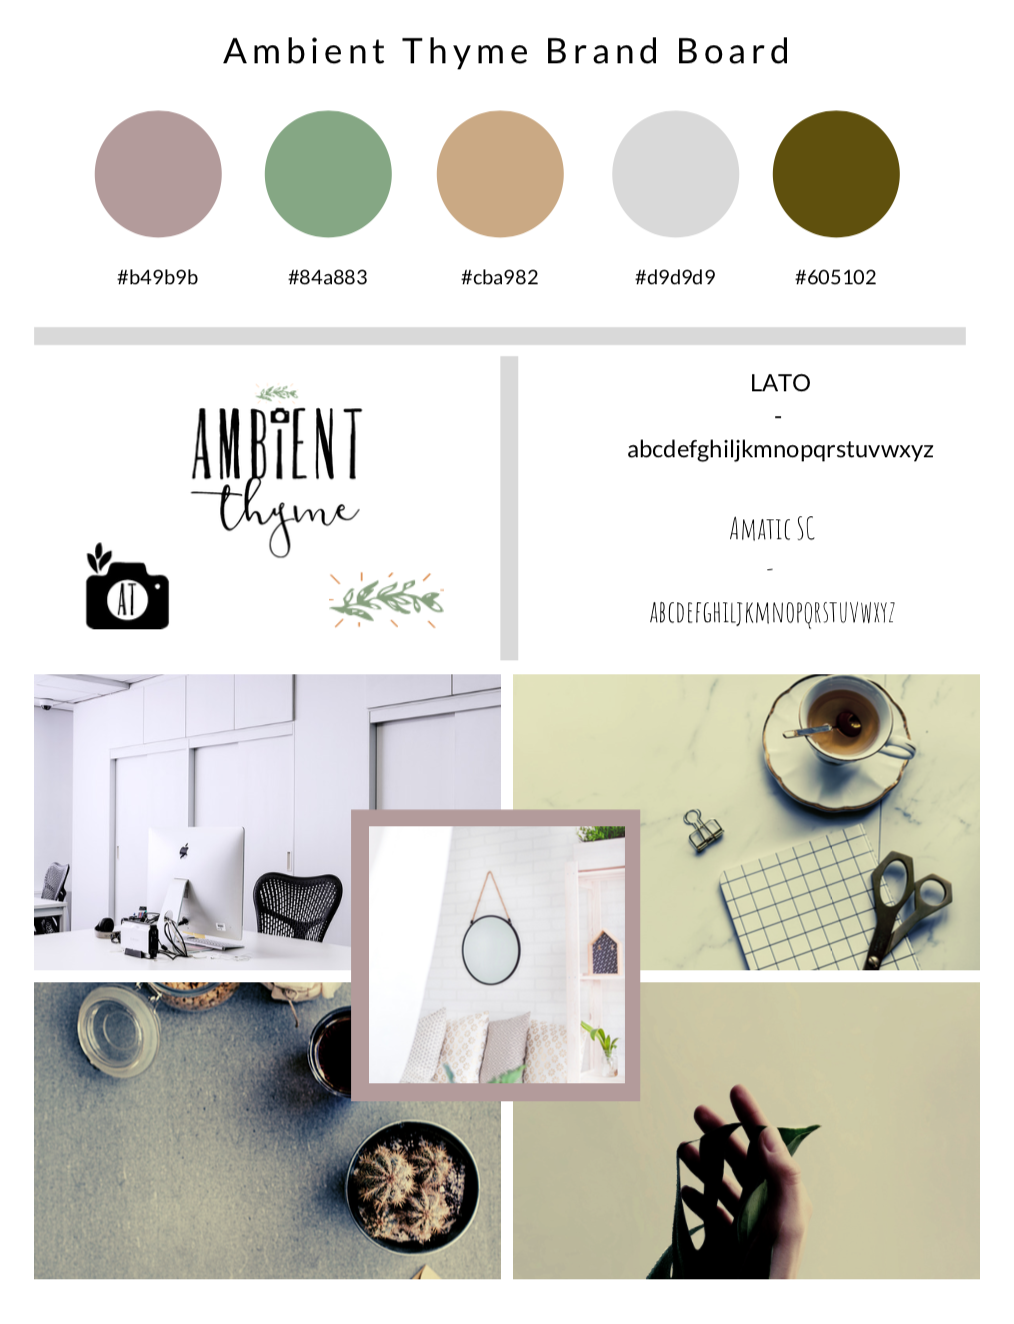 AmbientThyme-canva-brandboard.png